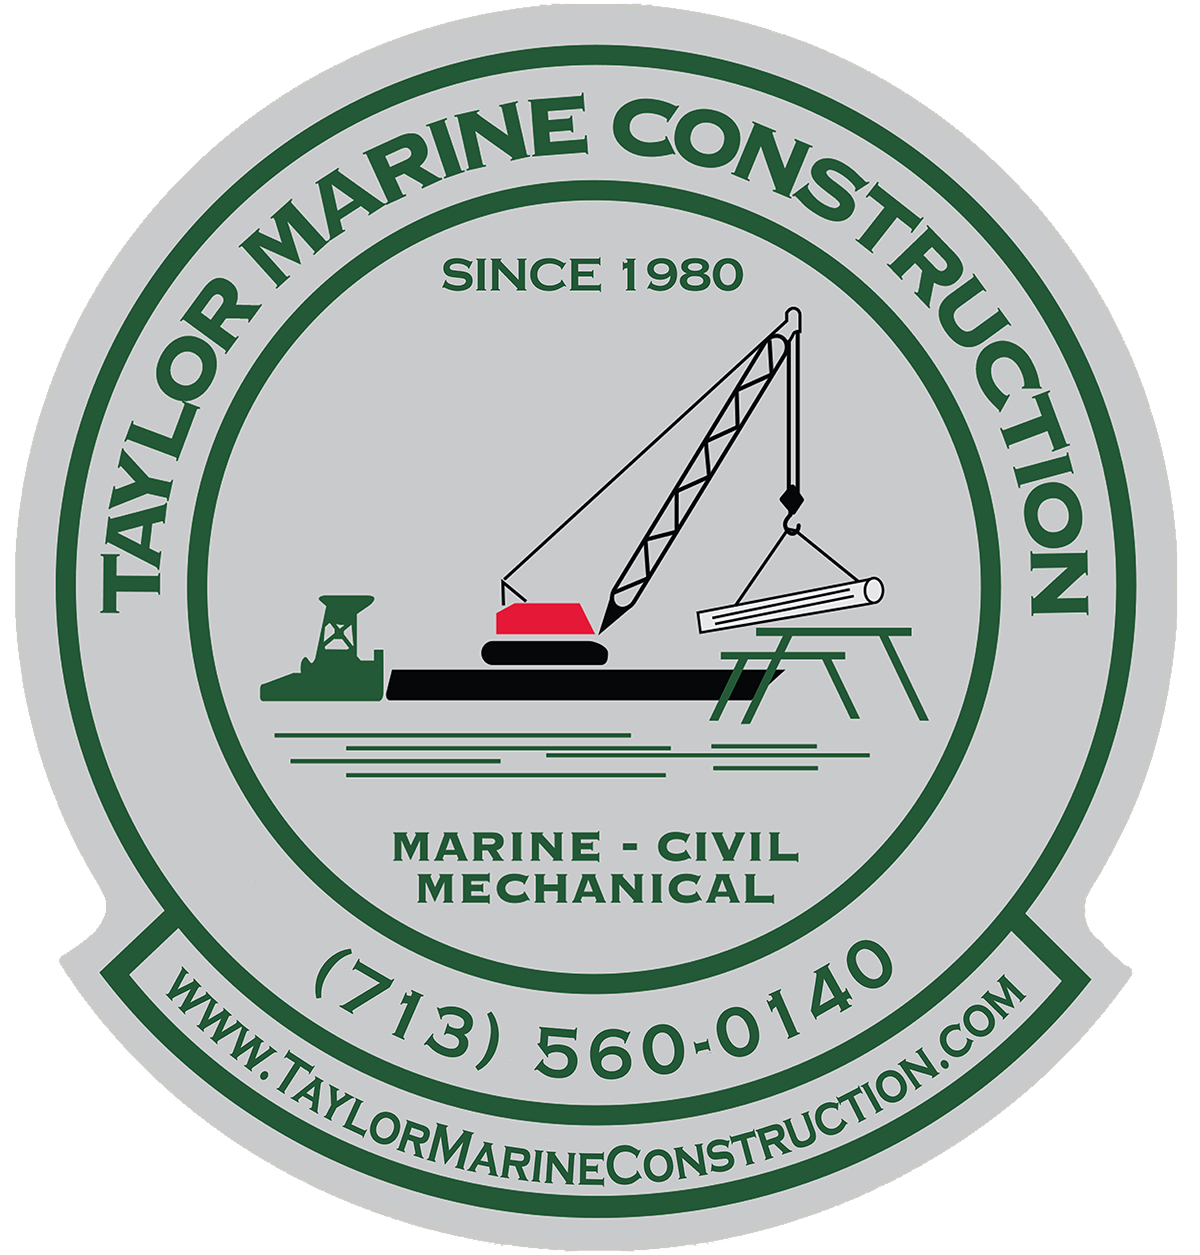 Specializing in the core elements of marine construction